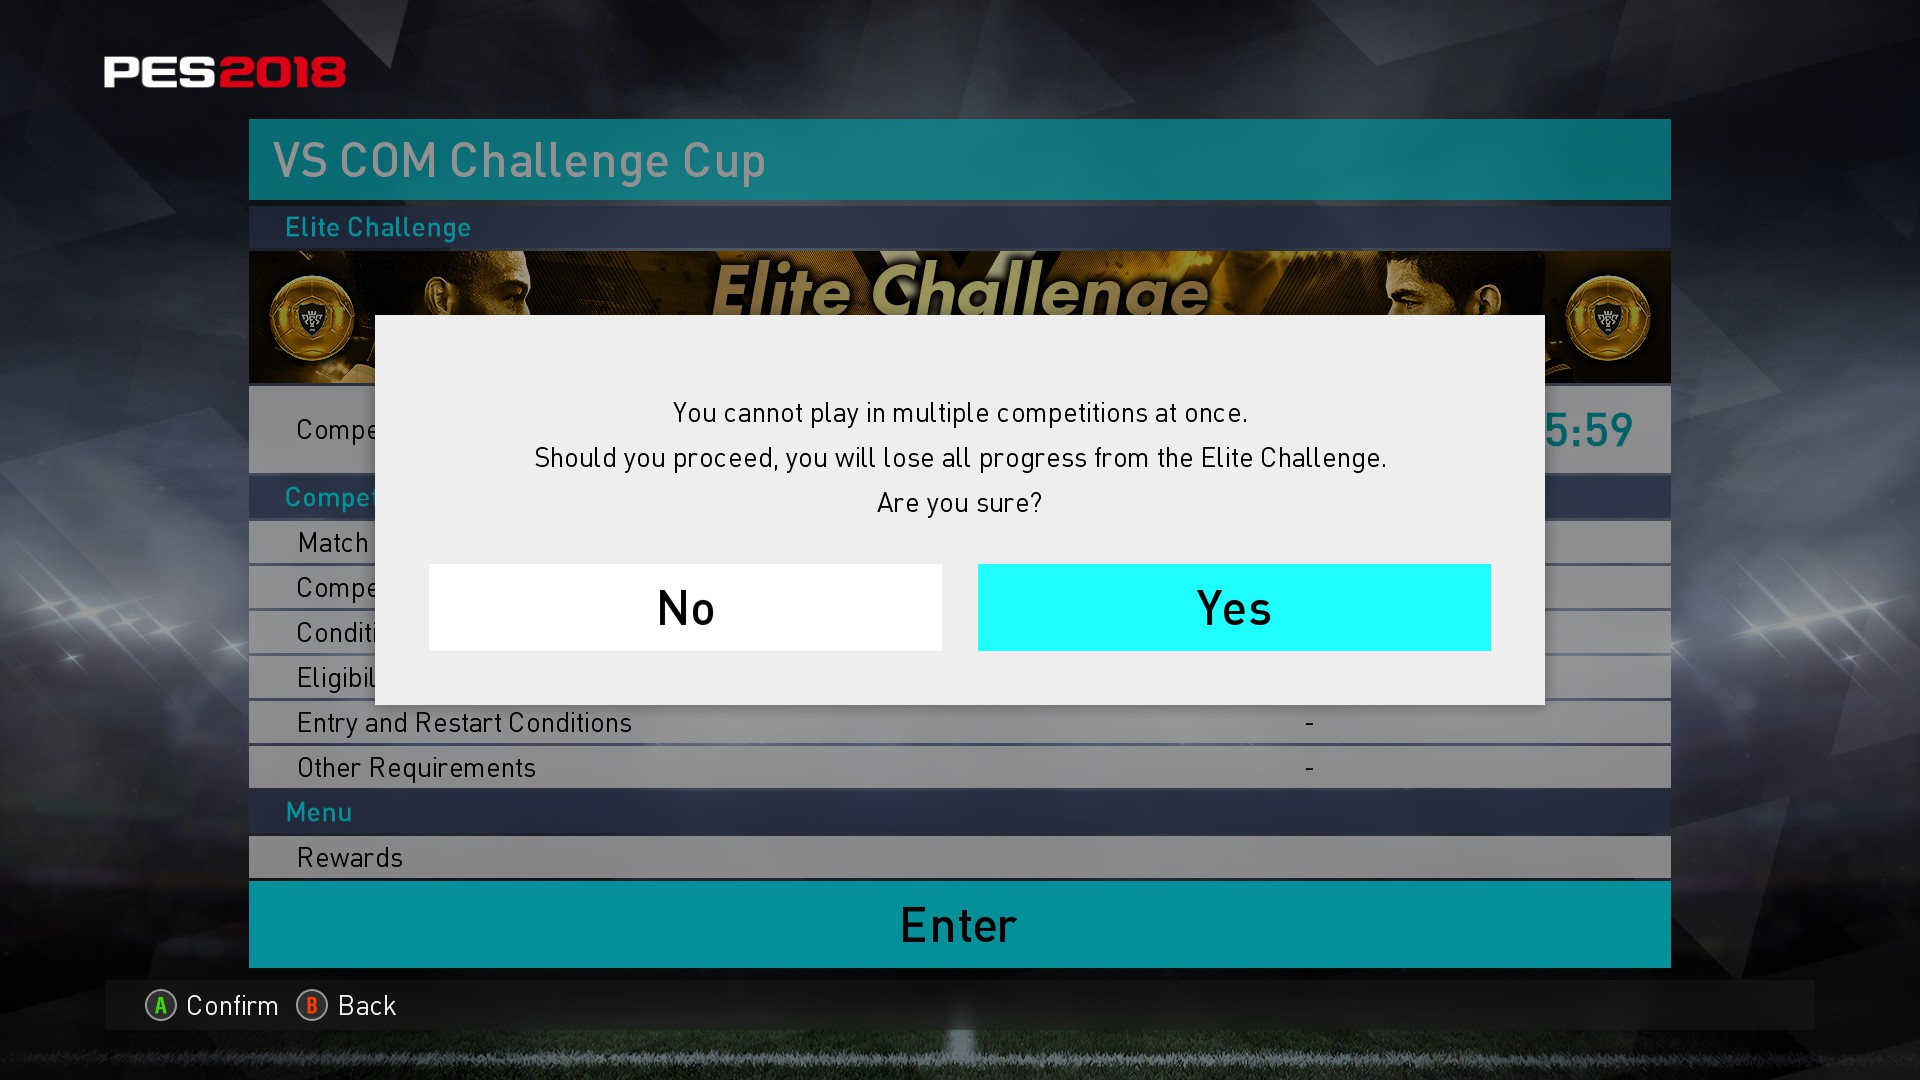 """Now the game says you already started the silver """"Elite challenge"""" but you want to start again so you say yes to the question and lose all progress"""